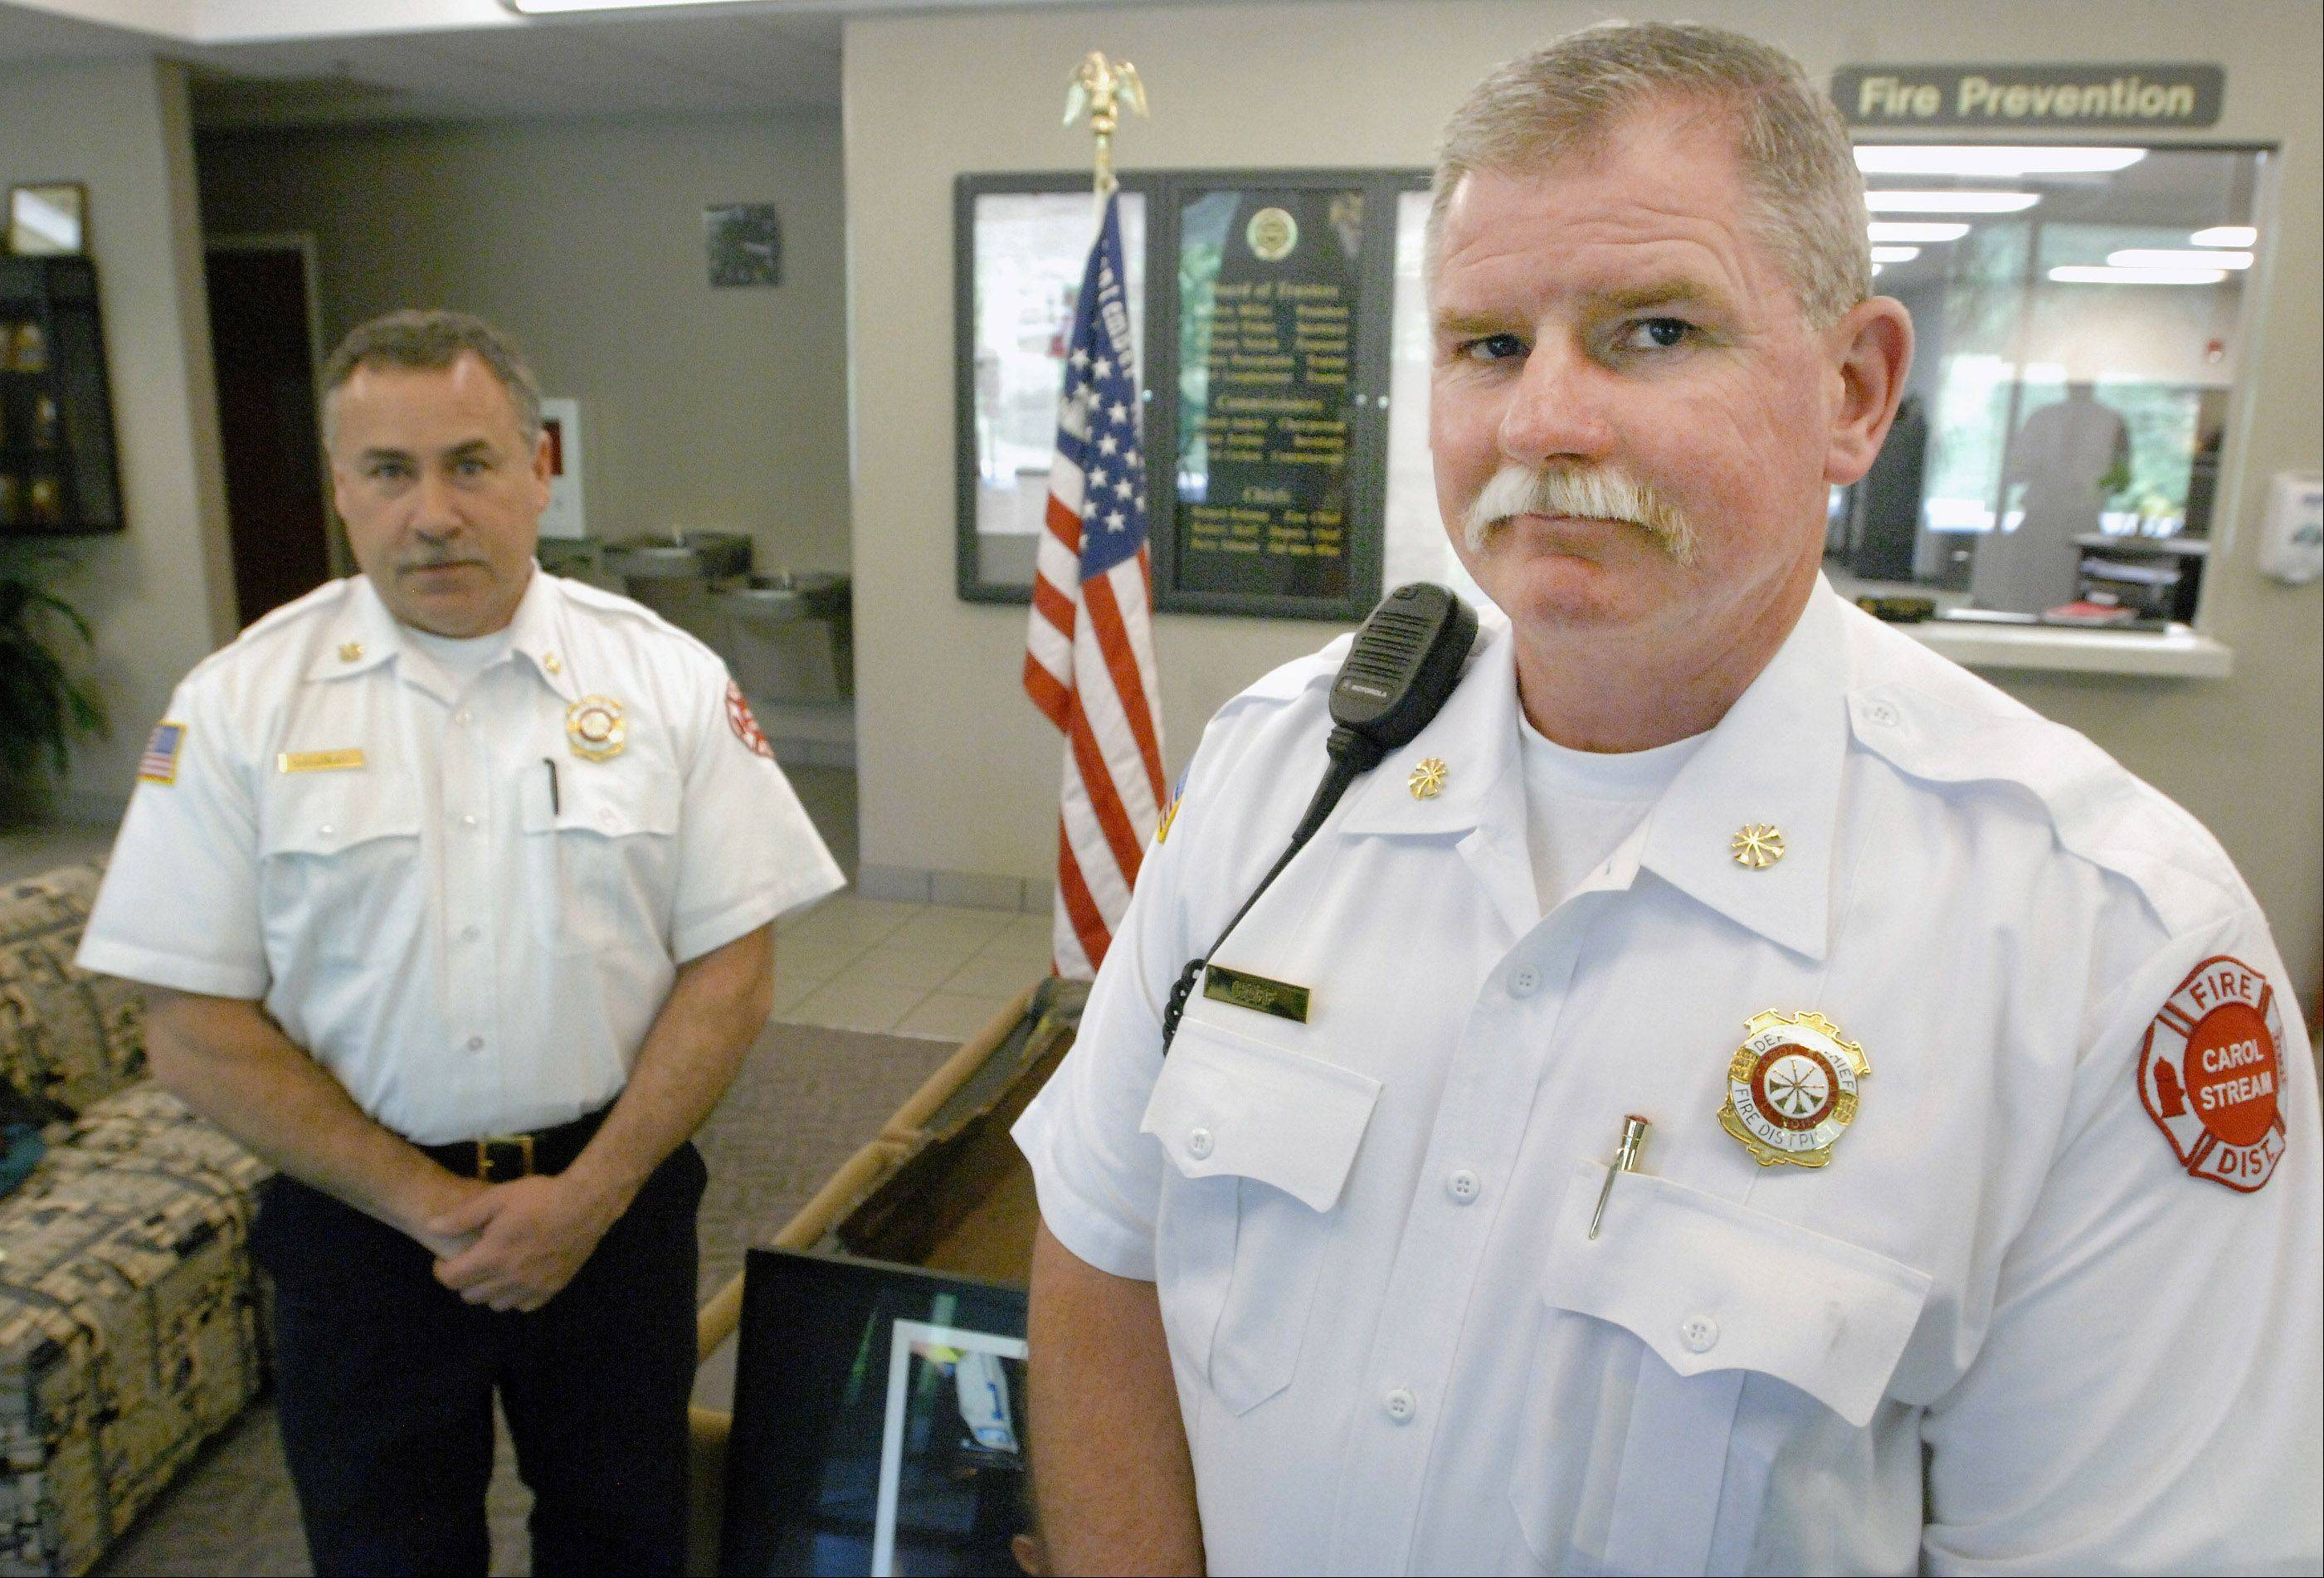 New Carol Stream Deputy Fire Chief Bob Hoff, right, was hired in February as part of a district leadership reorganization plan by Fire Chief Rick Kolomay. Critics on the fire district board suggested Kolomay was molding the position for Hoff, who stepped down two weeks before as Chicago Fire Department commissioner.